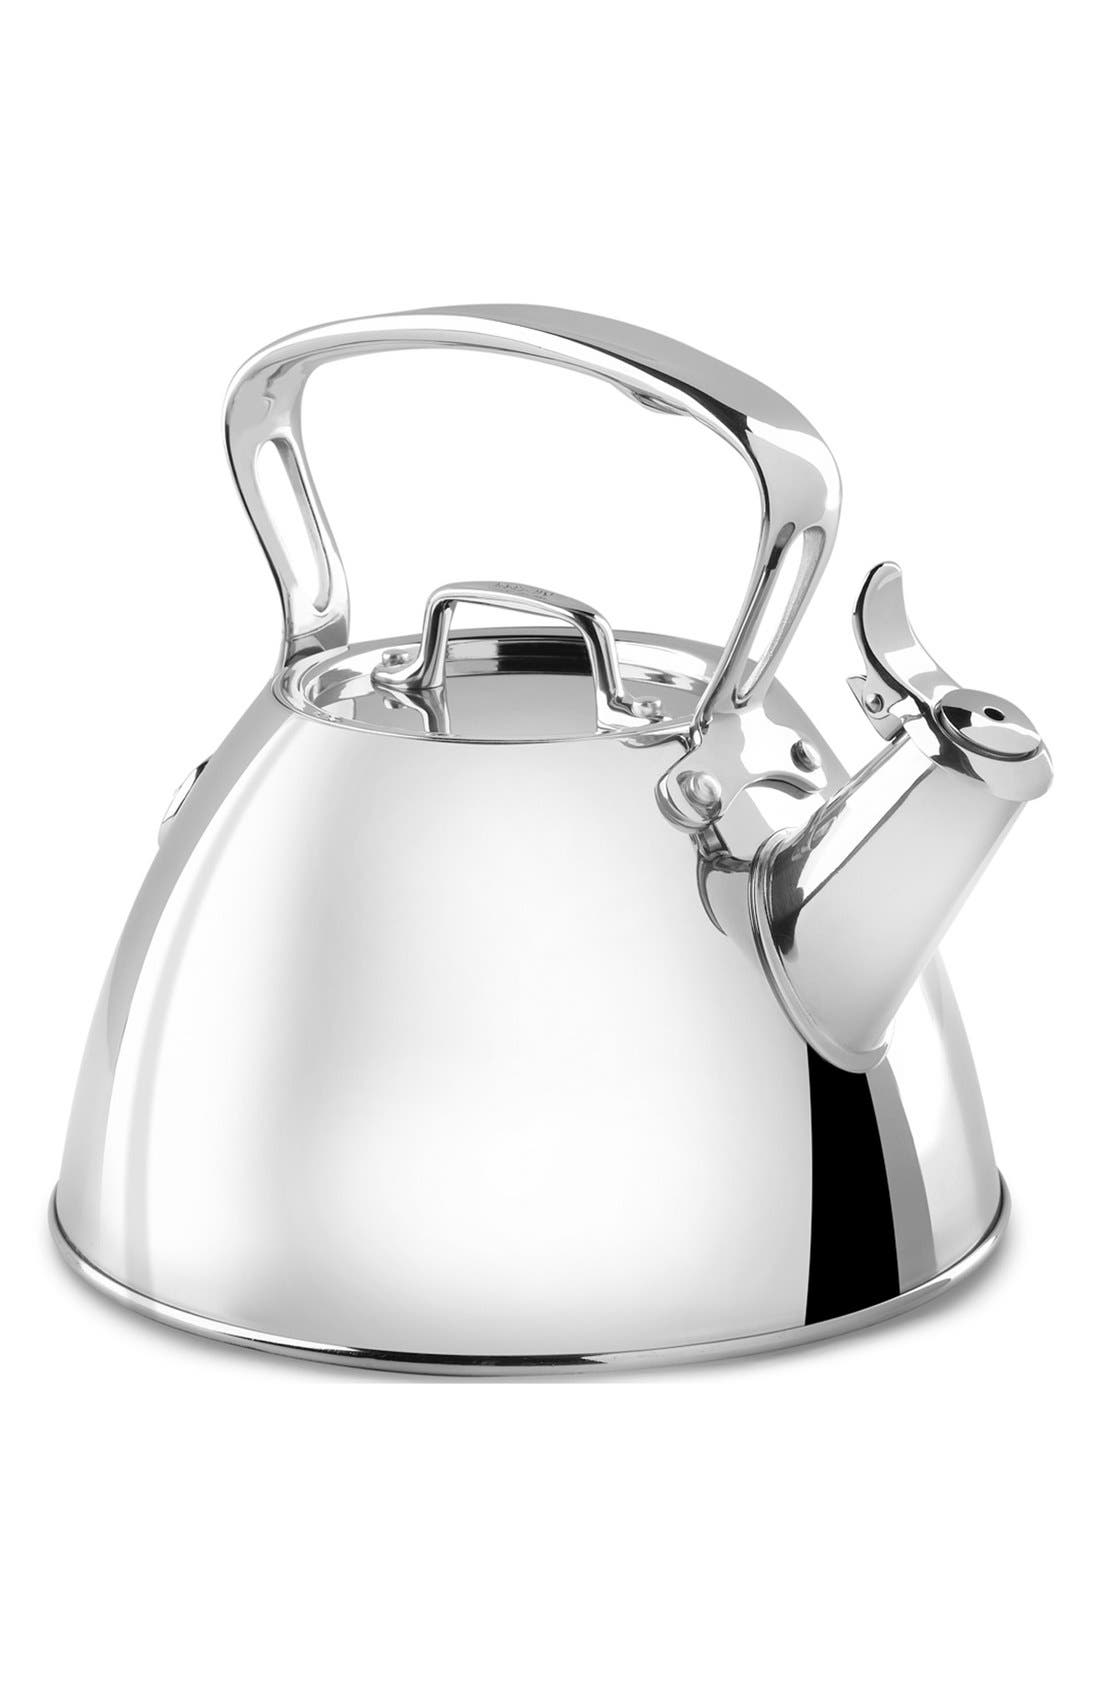 2-Quart Stainless Steel Tea Kettle,                             Main thumbnail 1, color,                             STAINLESS STEEL